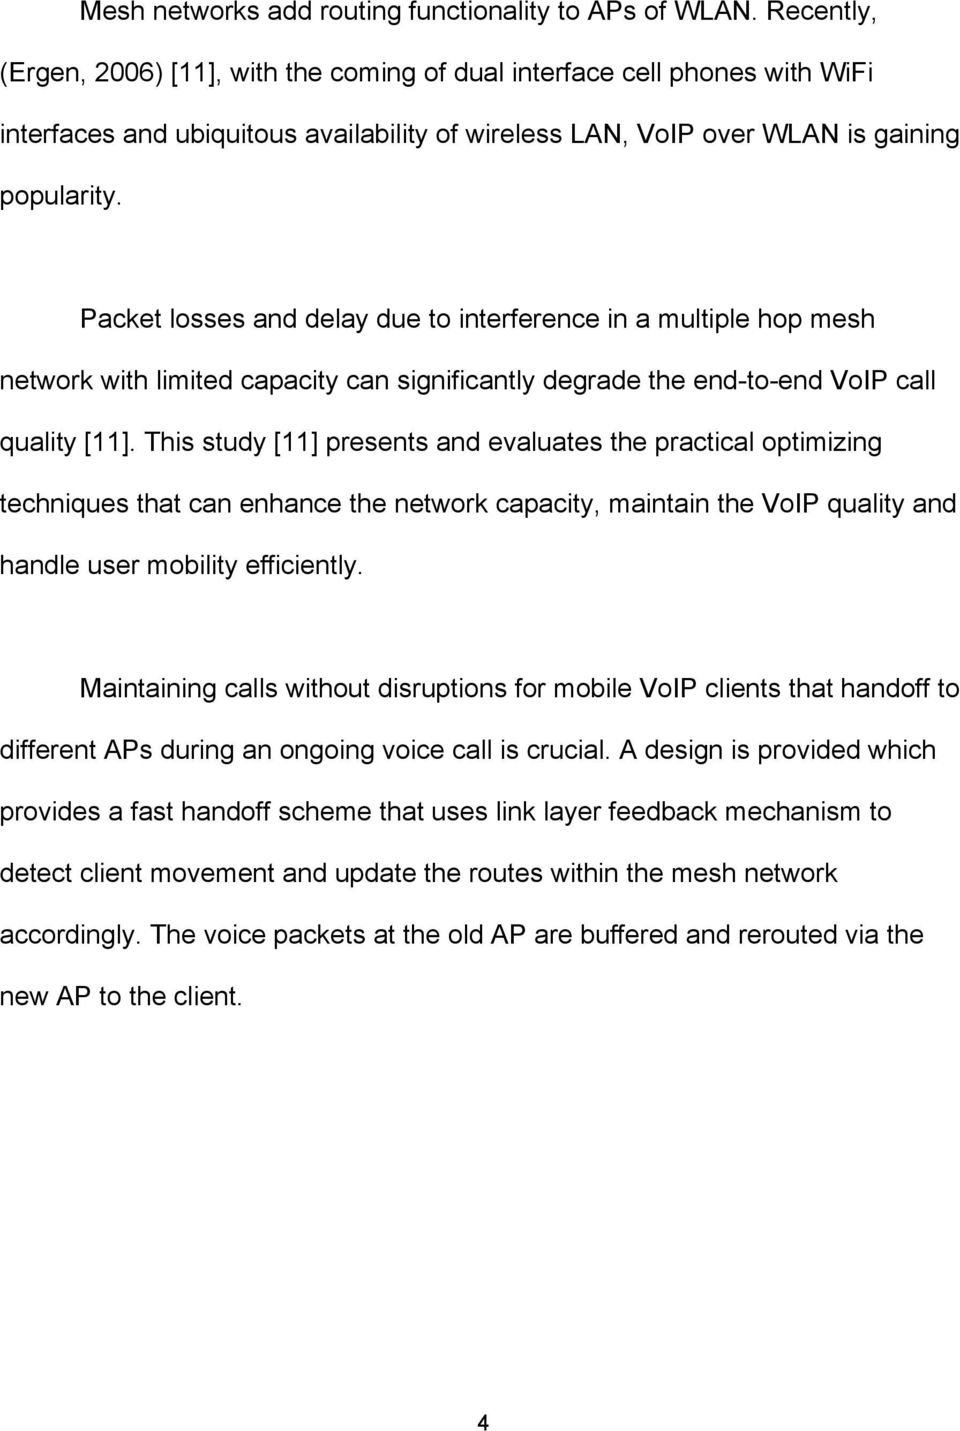 Packet losses and delay due to interference in a multiple hop mesh network with limited capacity can significantly degrade the end-to-end VoIP call quality [11].